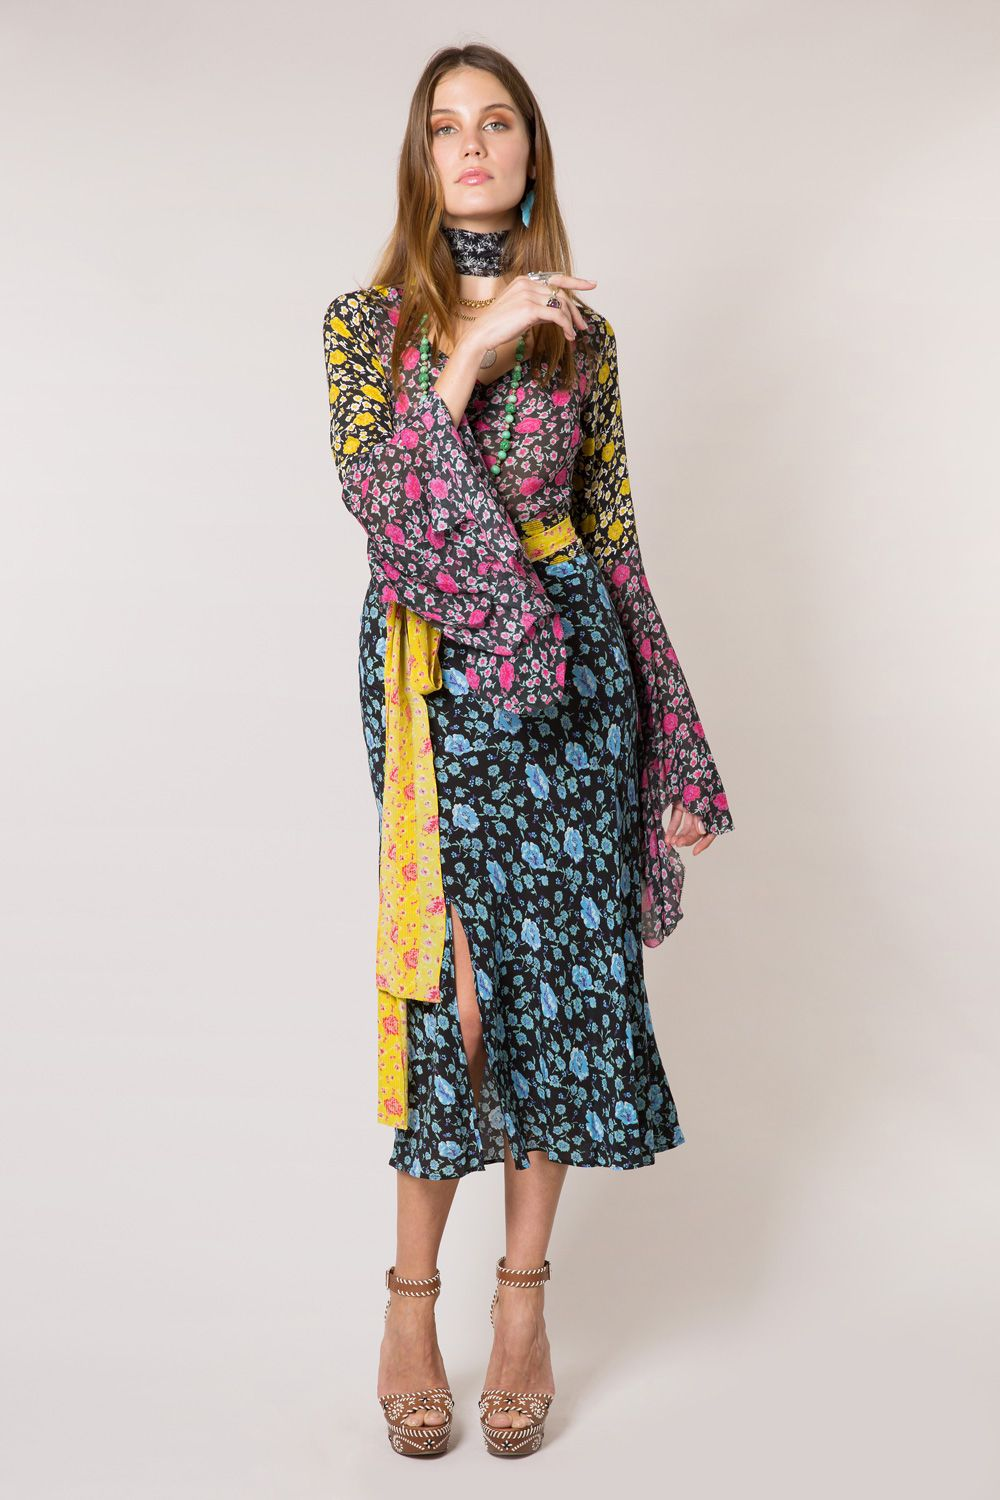 169fe1a5b2 This £35 Topshop dress looks a lot like a £330 designer version